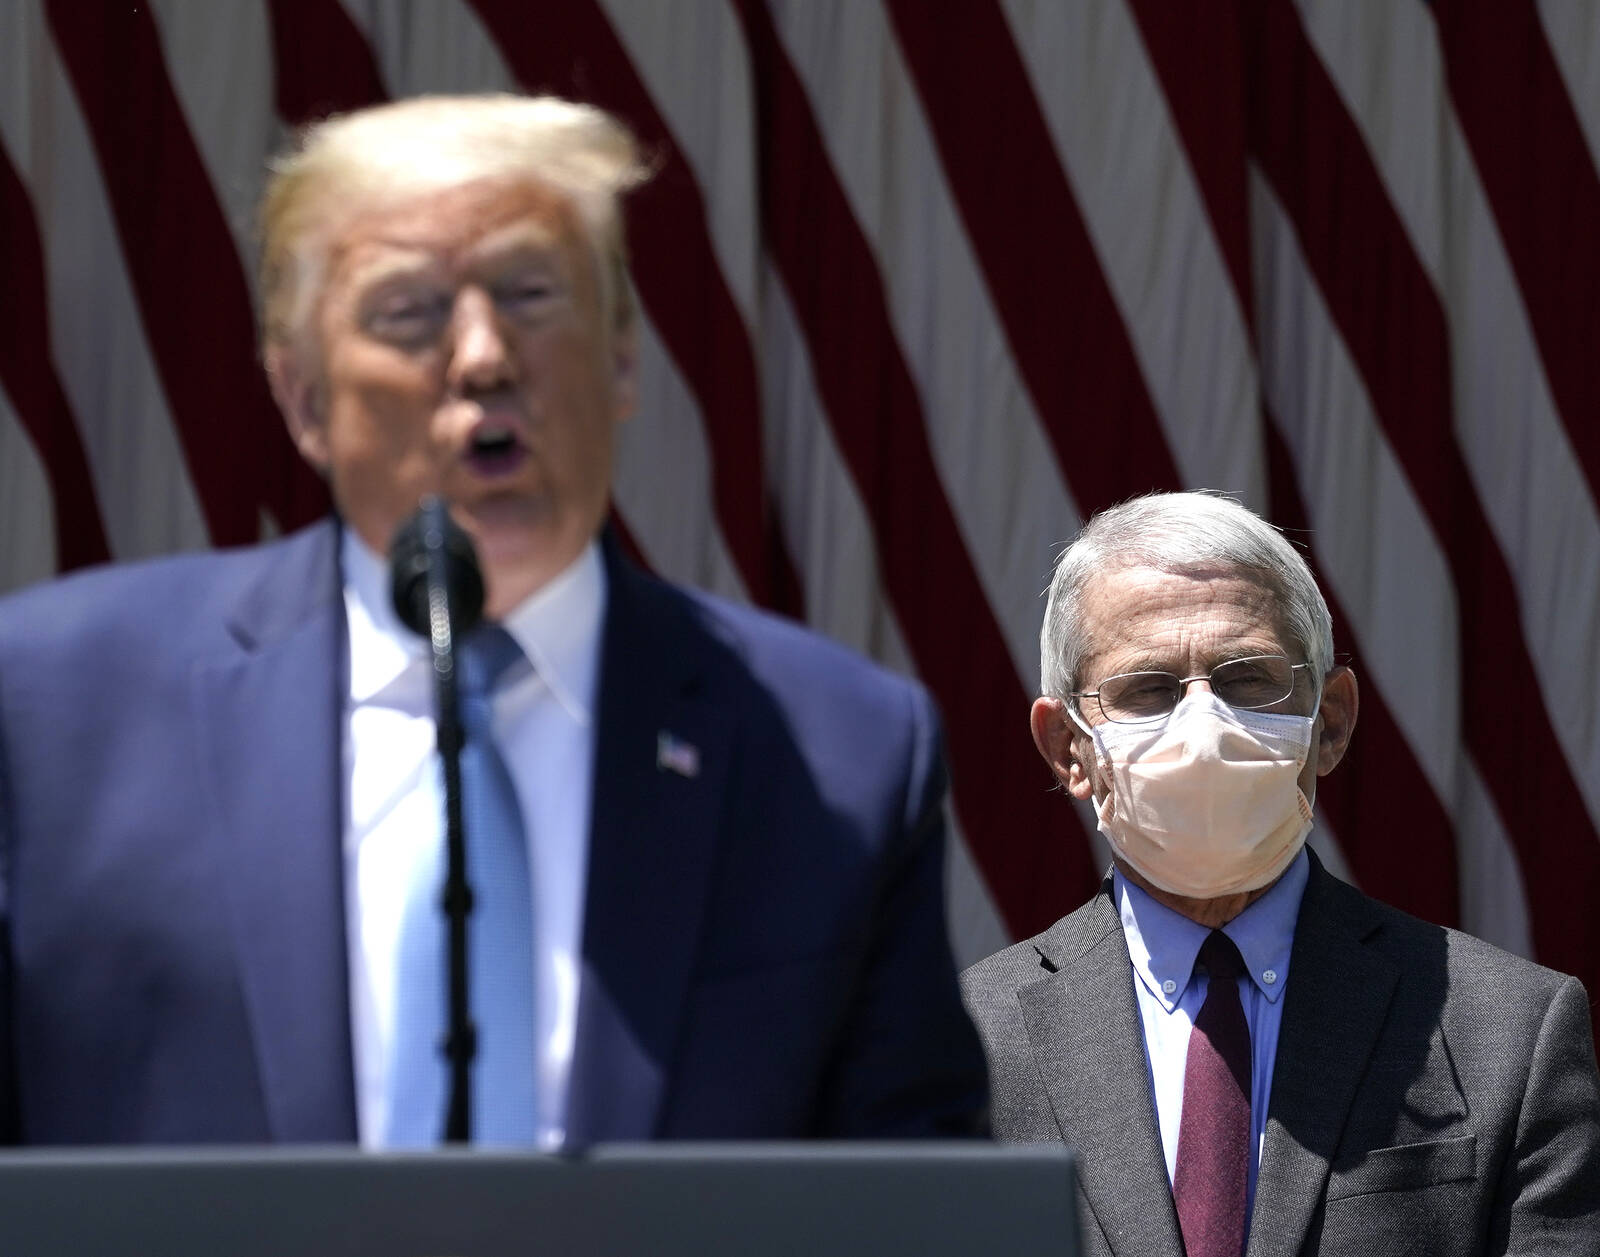 President Donald Trump is flanked by Dr. Anthony Fauci, director of the National Institute of Allergy and Infectious Diseases while speaking about coronavirus vaccine development on May 15, 2020 in Washington, D.C. Credit: Drew Angerer/Getty Images